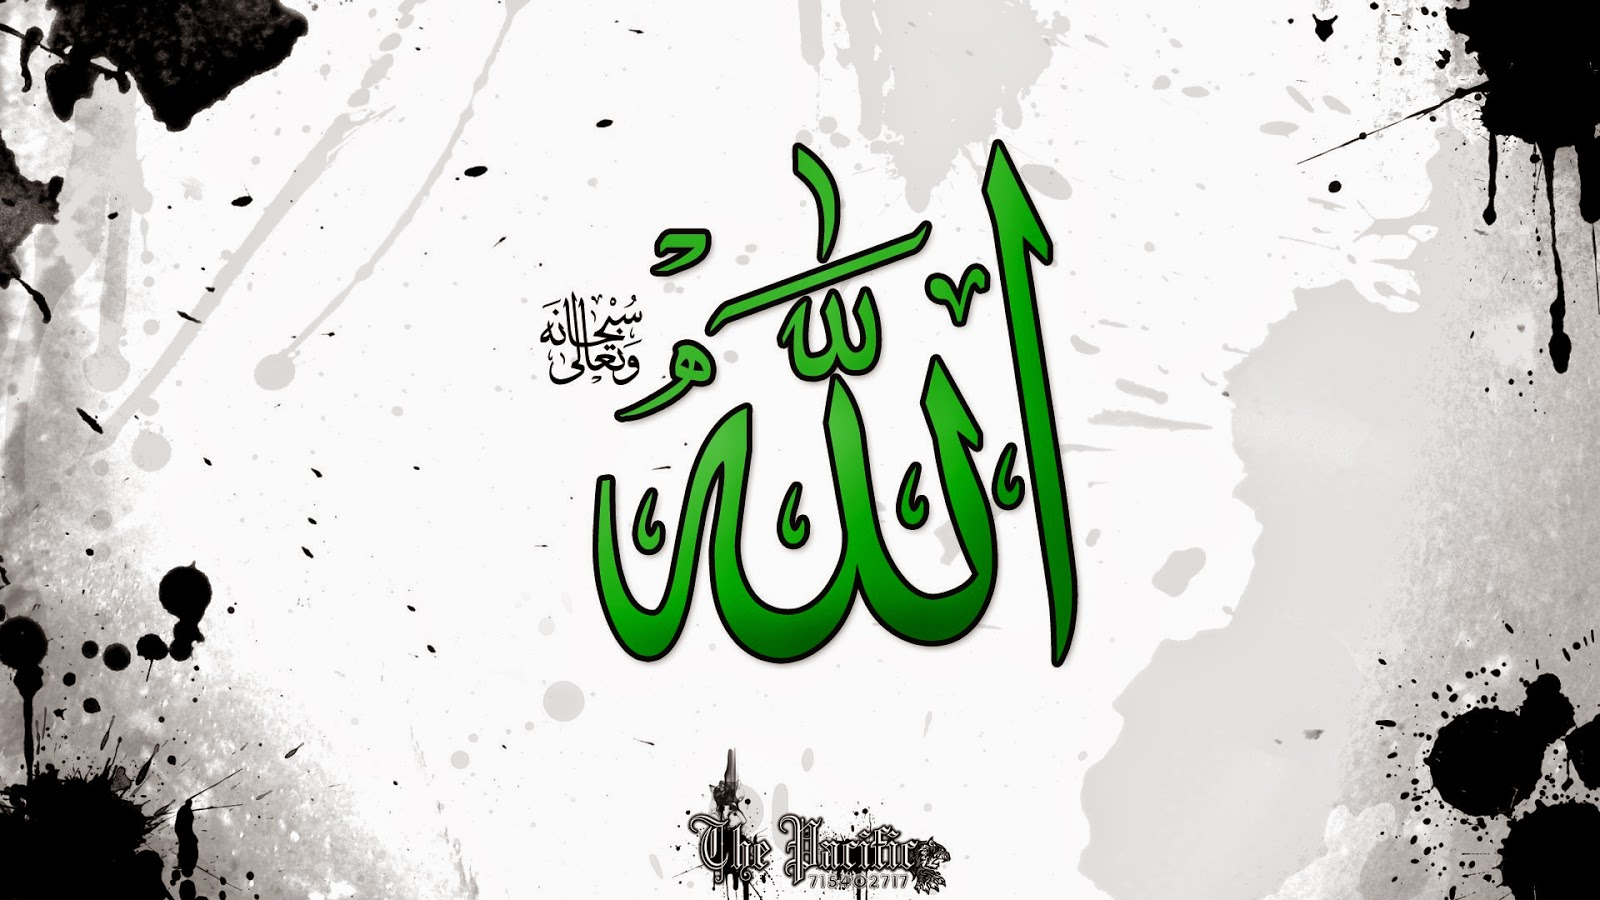 S Name Wallpaper Hd Download: Allinallwalls : ALLAH Name Desktop Wallpaper, Allah Hd